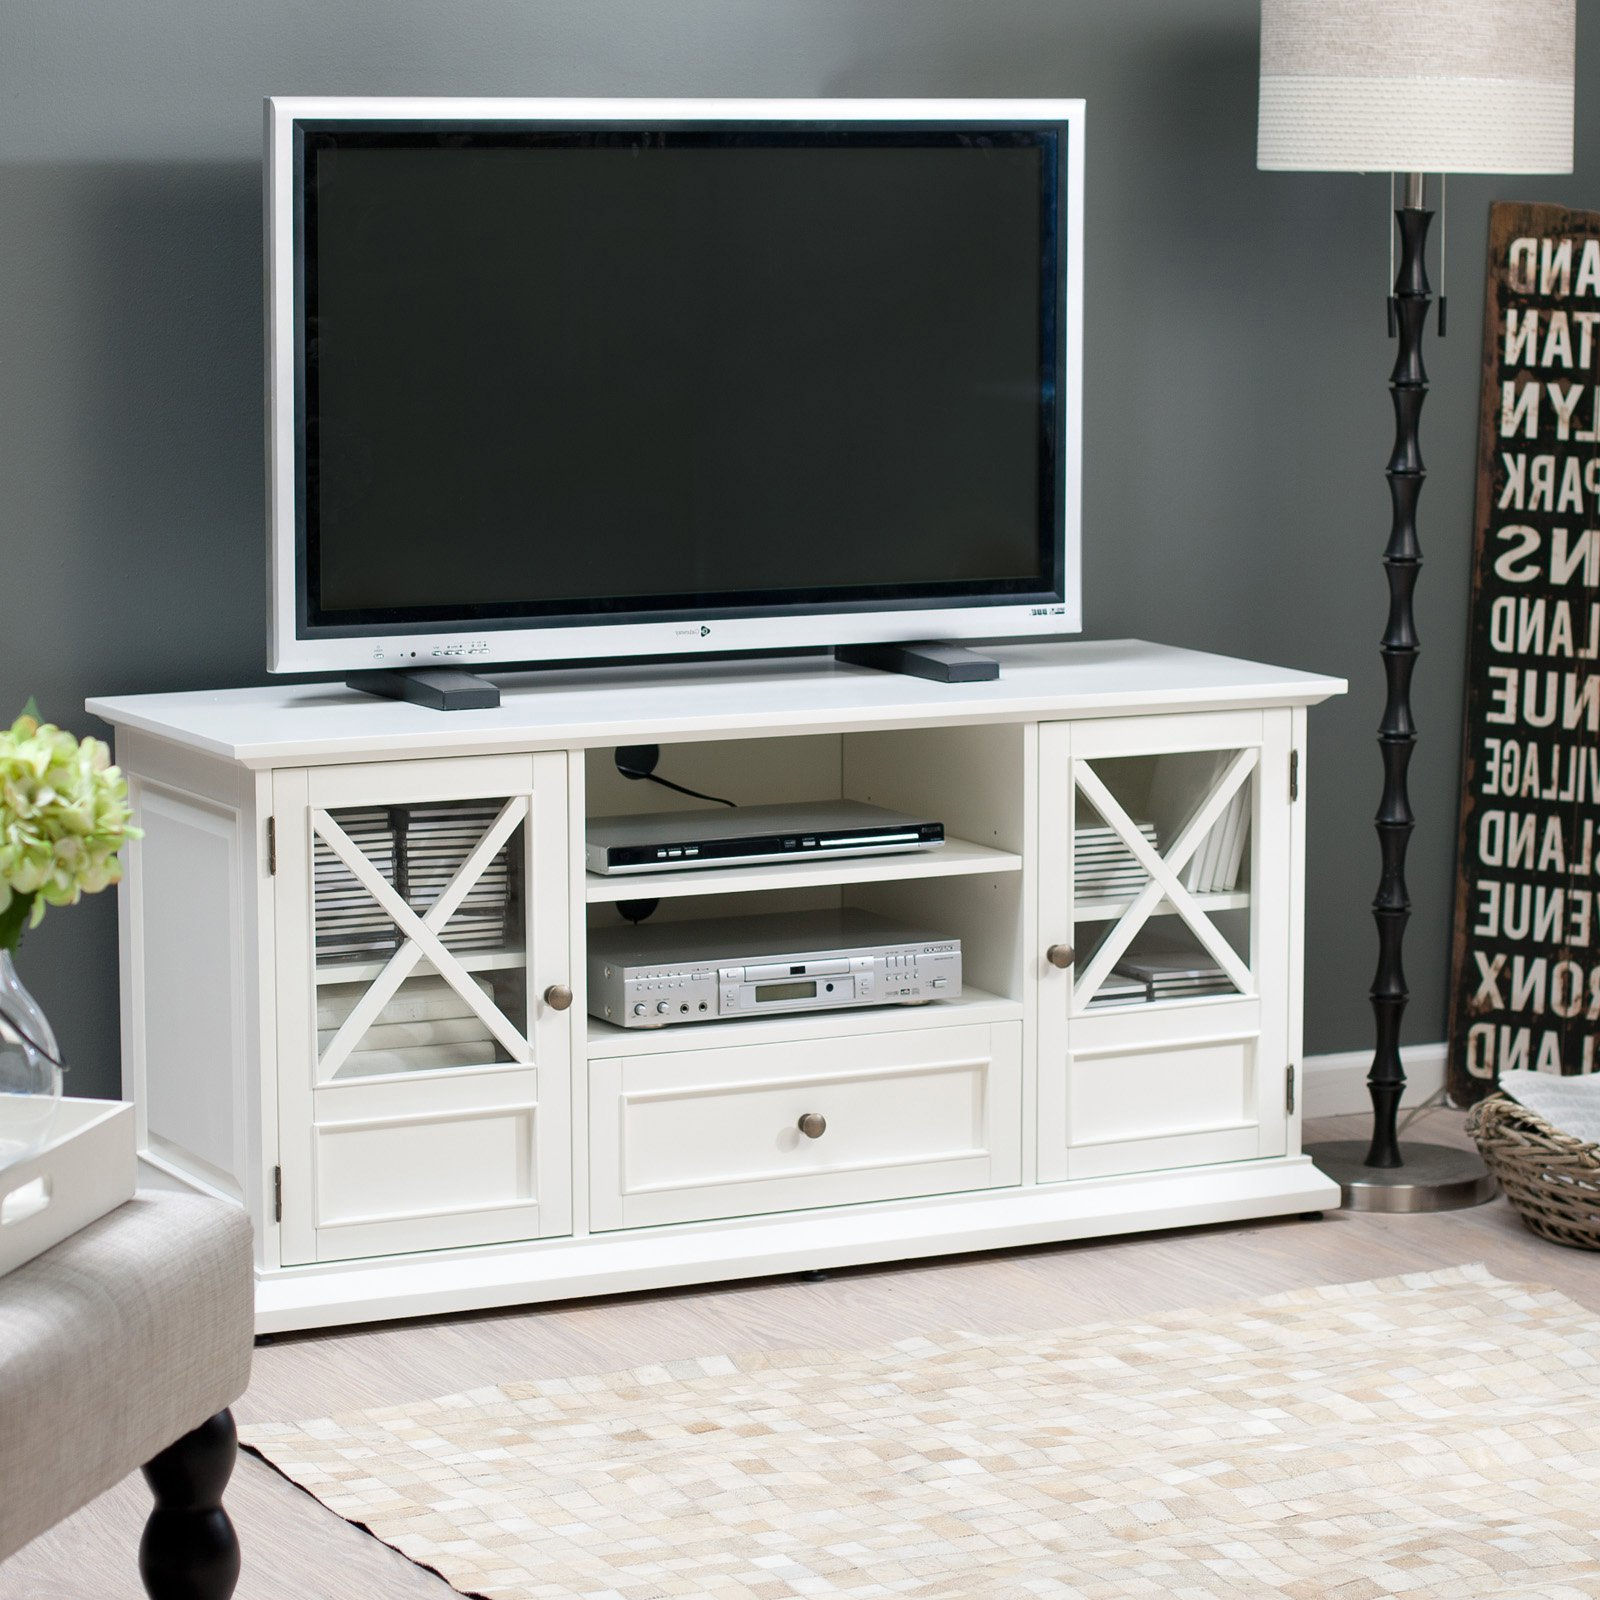 Belham Living Hampton Tv Stand – White – Walmart With Regard To Most Recent White Tv Stands For Flat Screens (View 1 of 20)